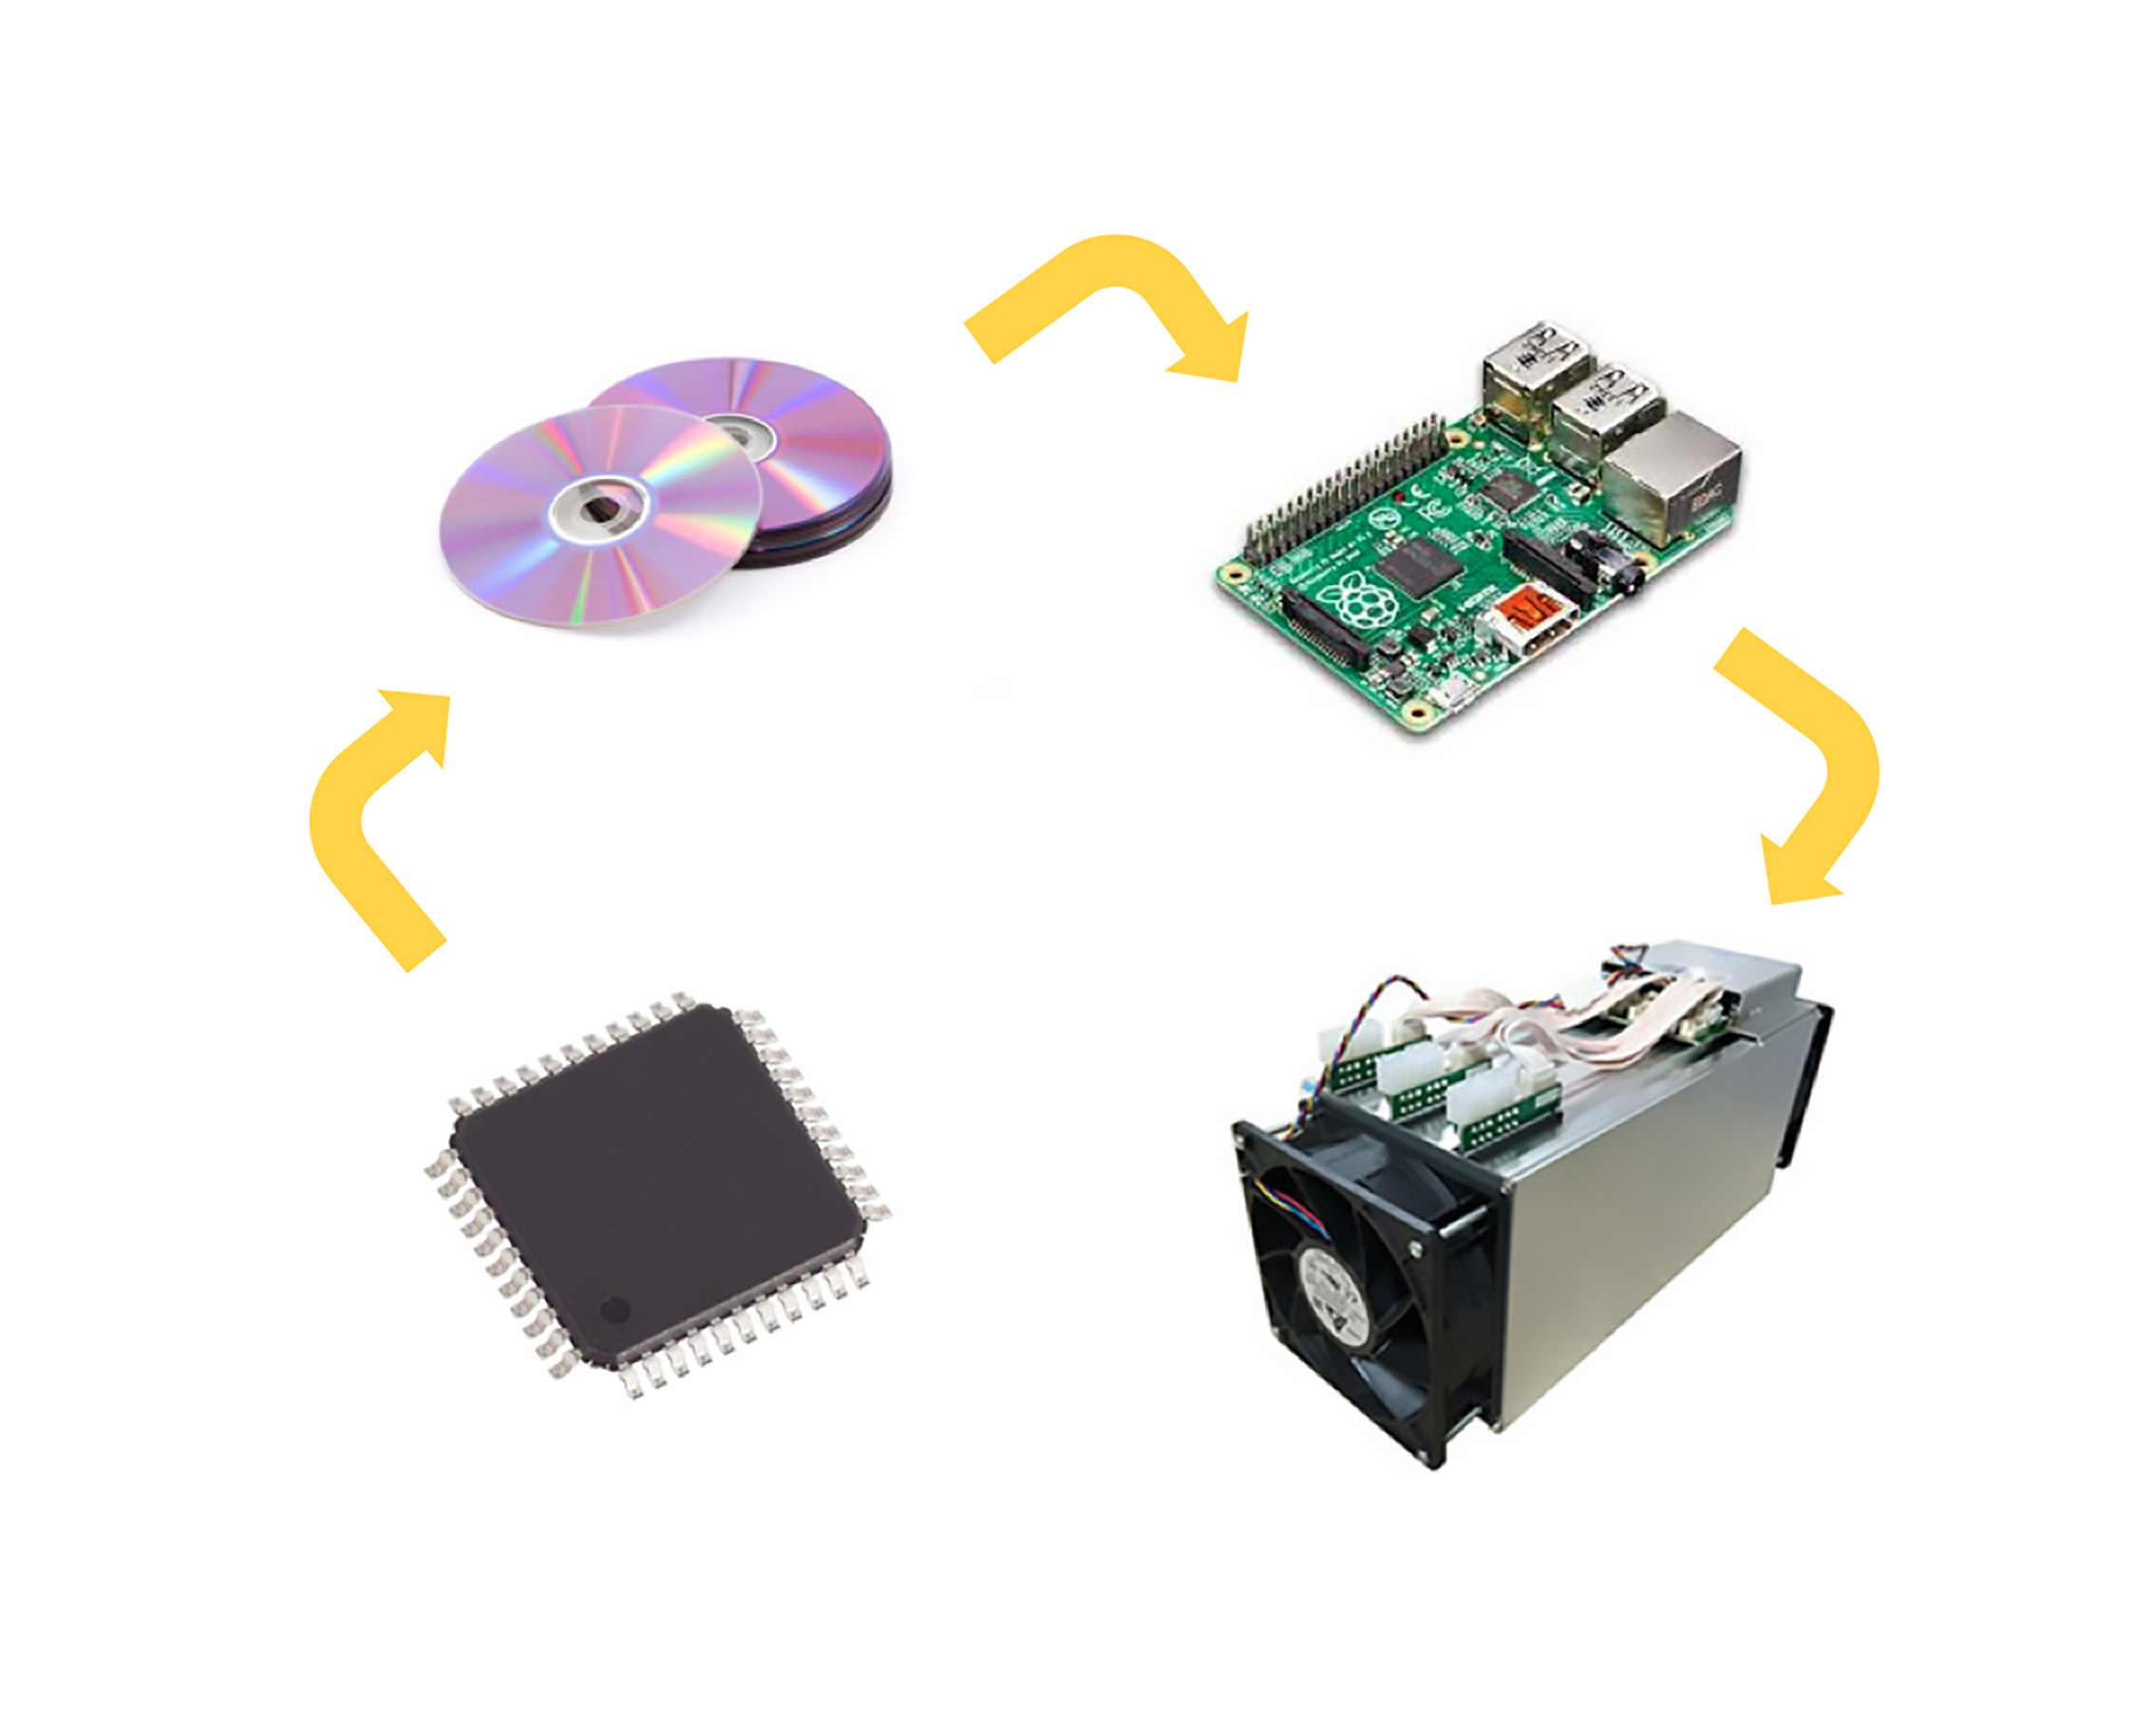 "End-to-end Systems Approach - ePIC employs a ""Total System Approach"". We design from a systems perspective to ensure your ASIC works with the firmware, board and other components in your system. This approach provides the highest efficiency in time-to-market and minimizes unexpected cost due to deficiencies in the design."